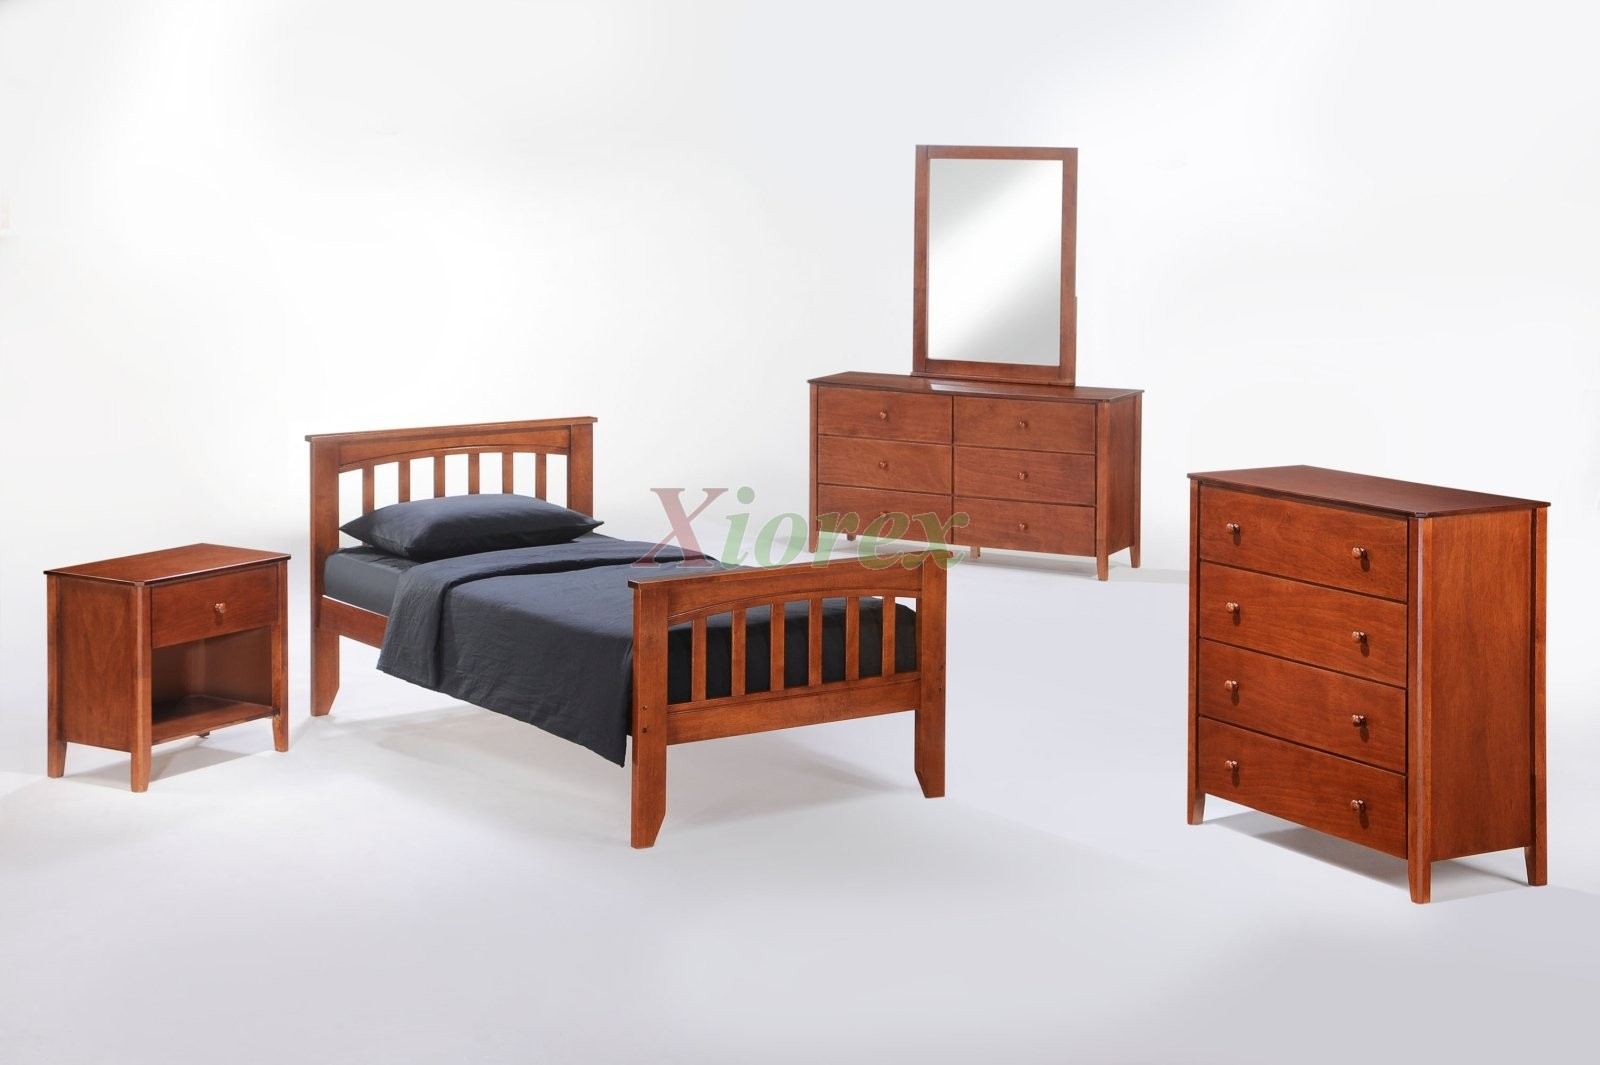 Youth bedroom sets night day sasparilla bed sets for for Dresser and nightstand set